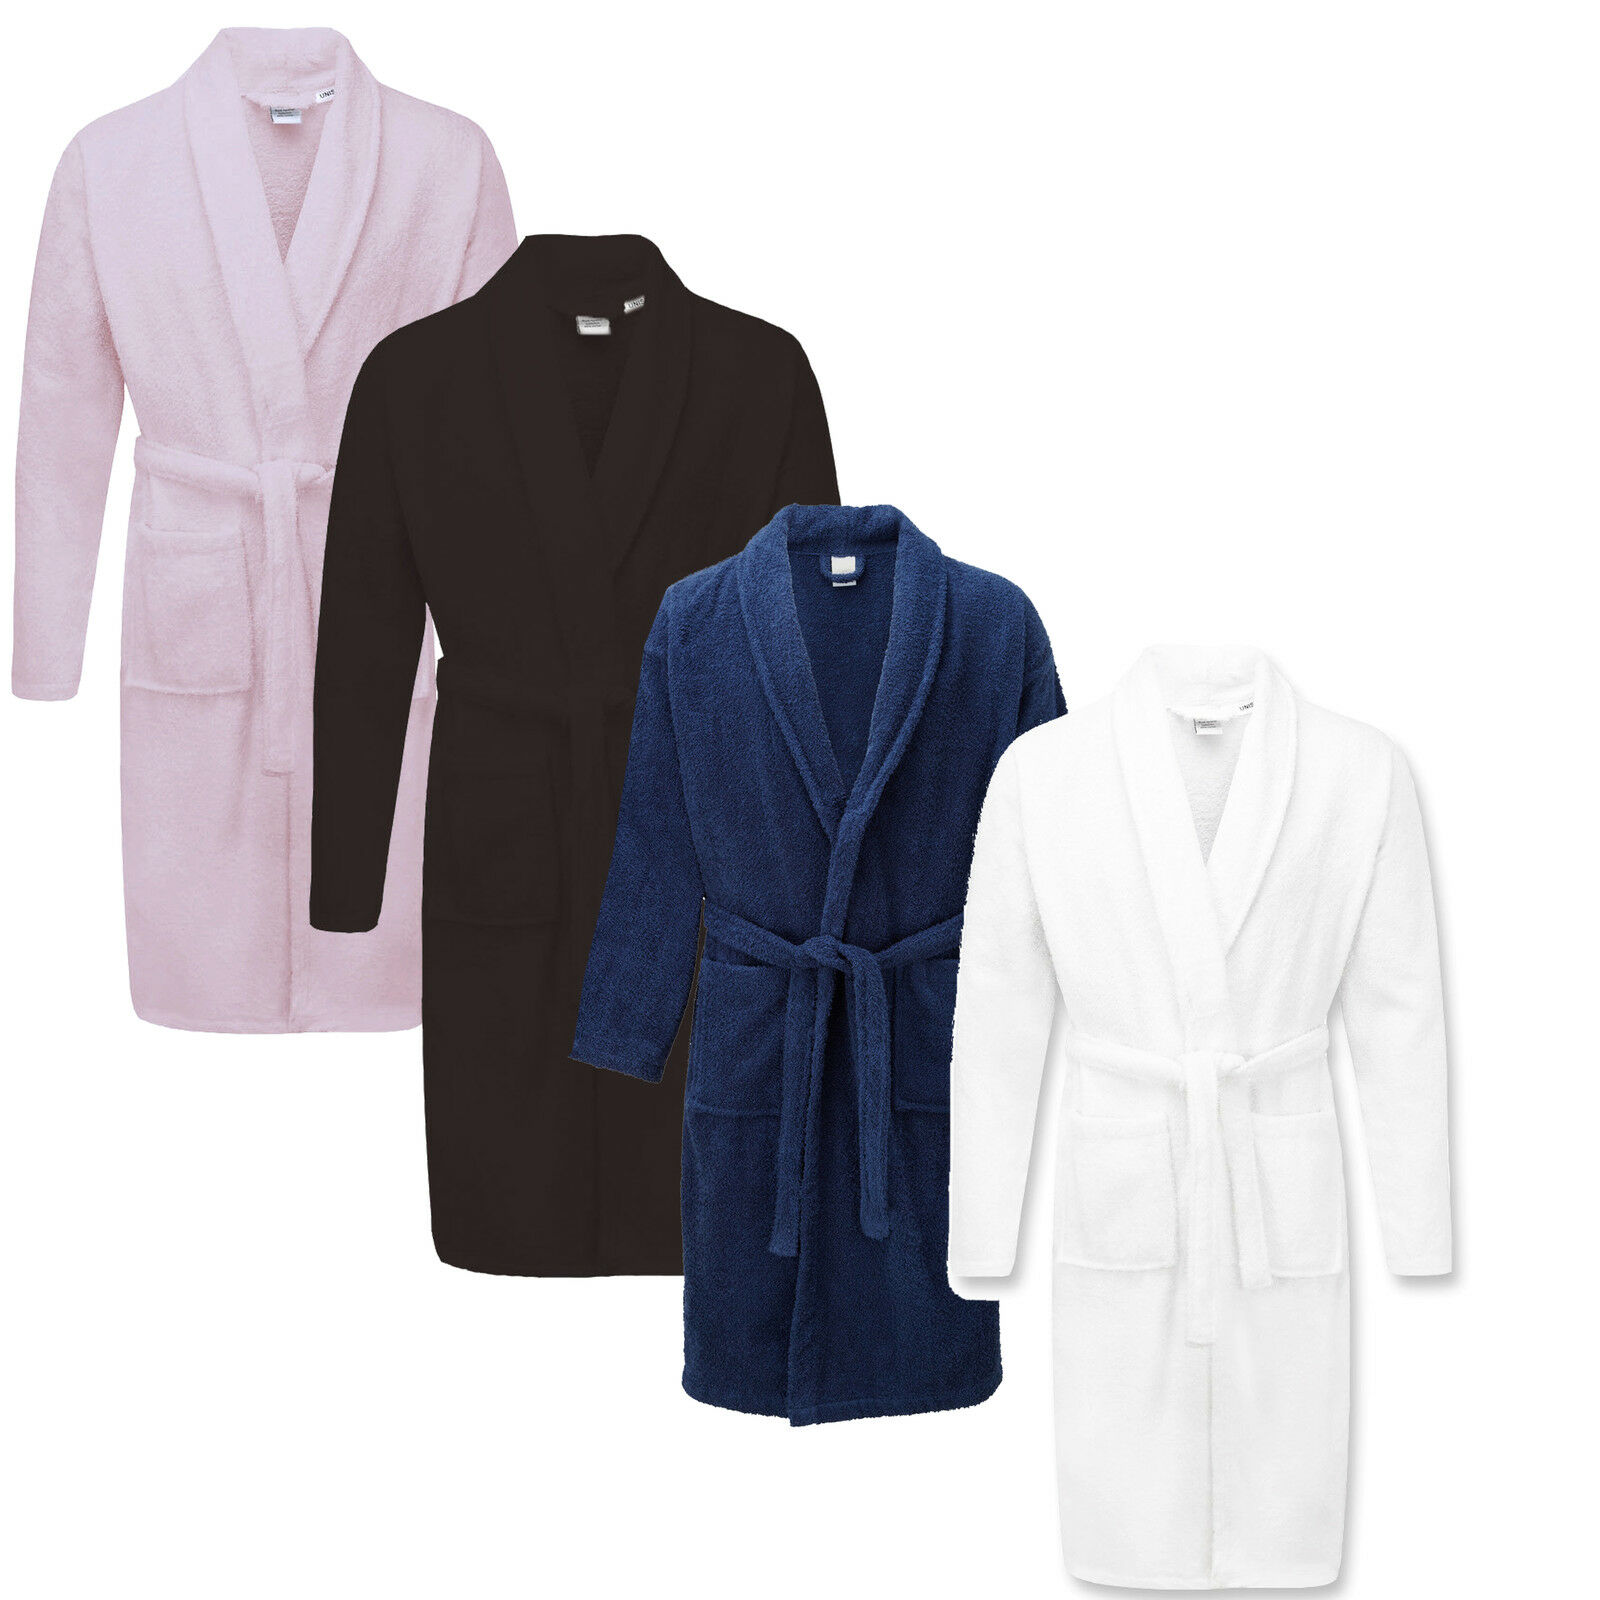 NEW 100% EGYPTIAN Cotton Dressing Gown Shawl Towelling Bath Robe ...